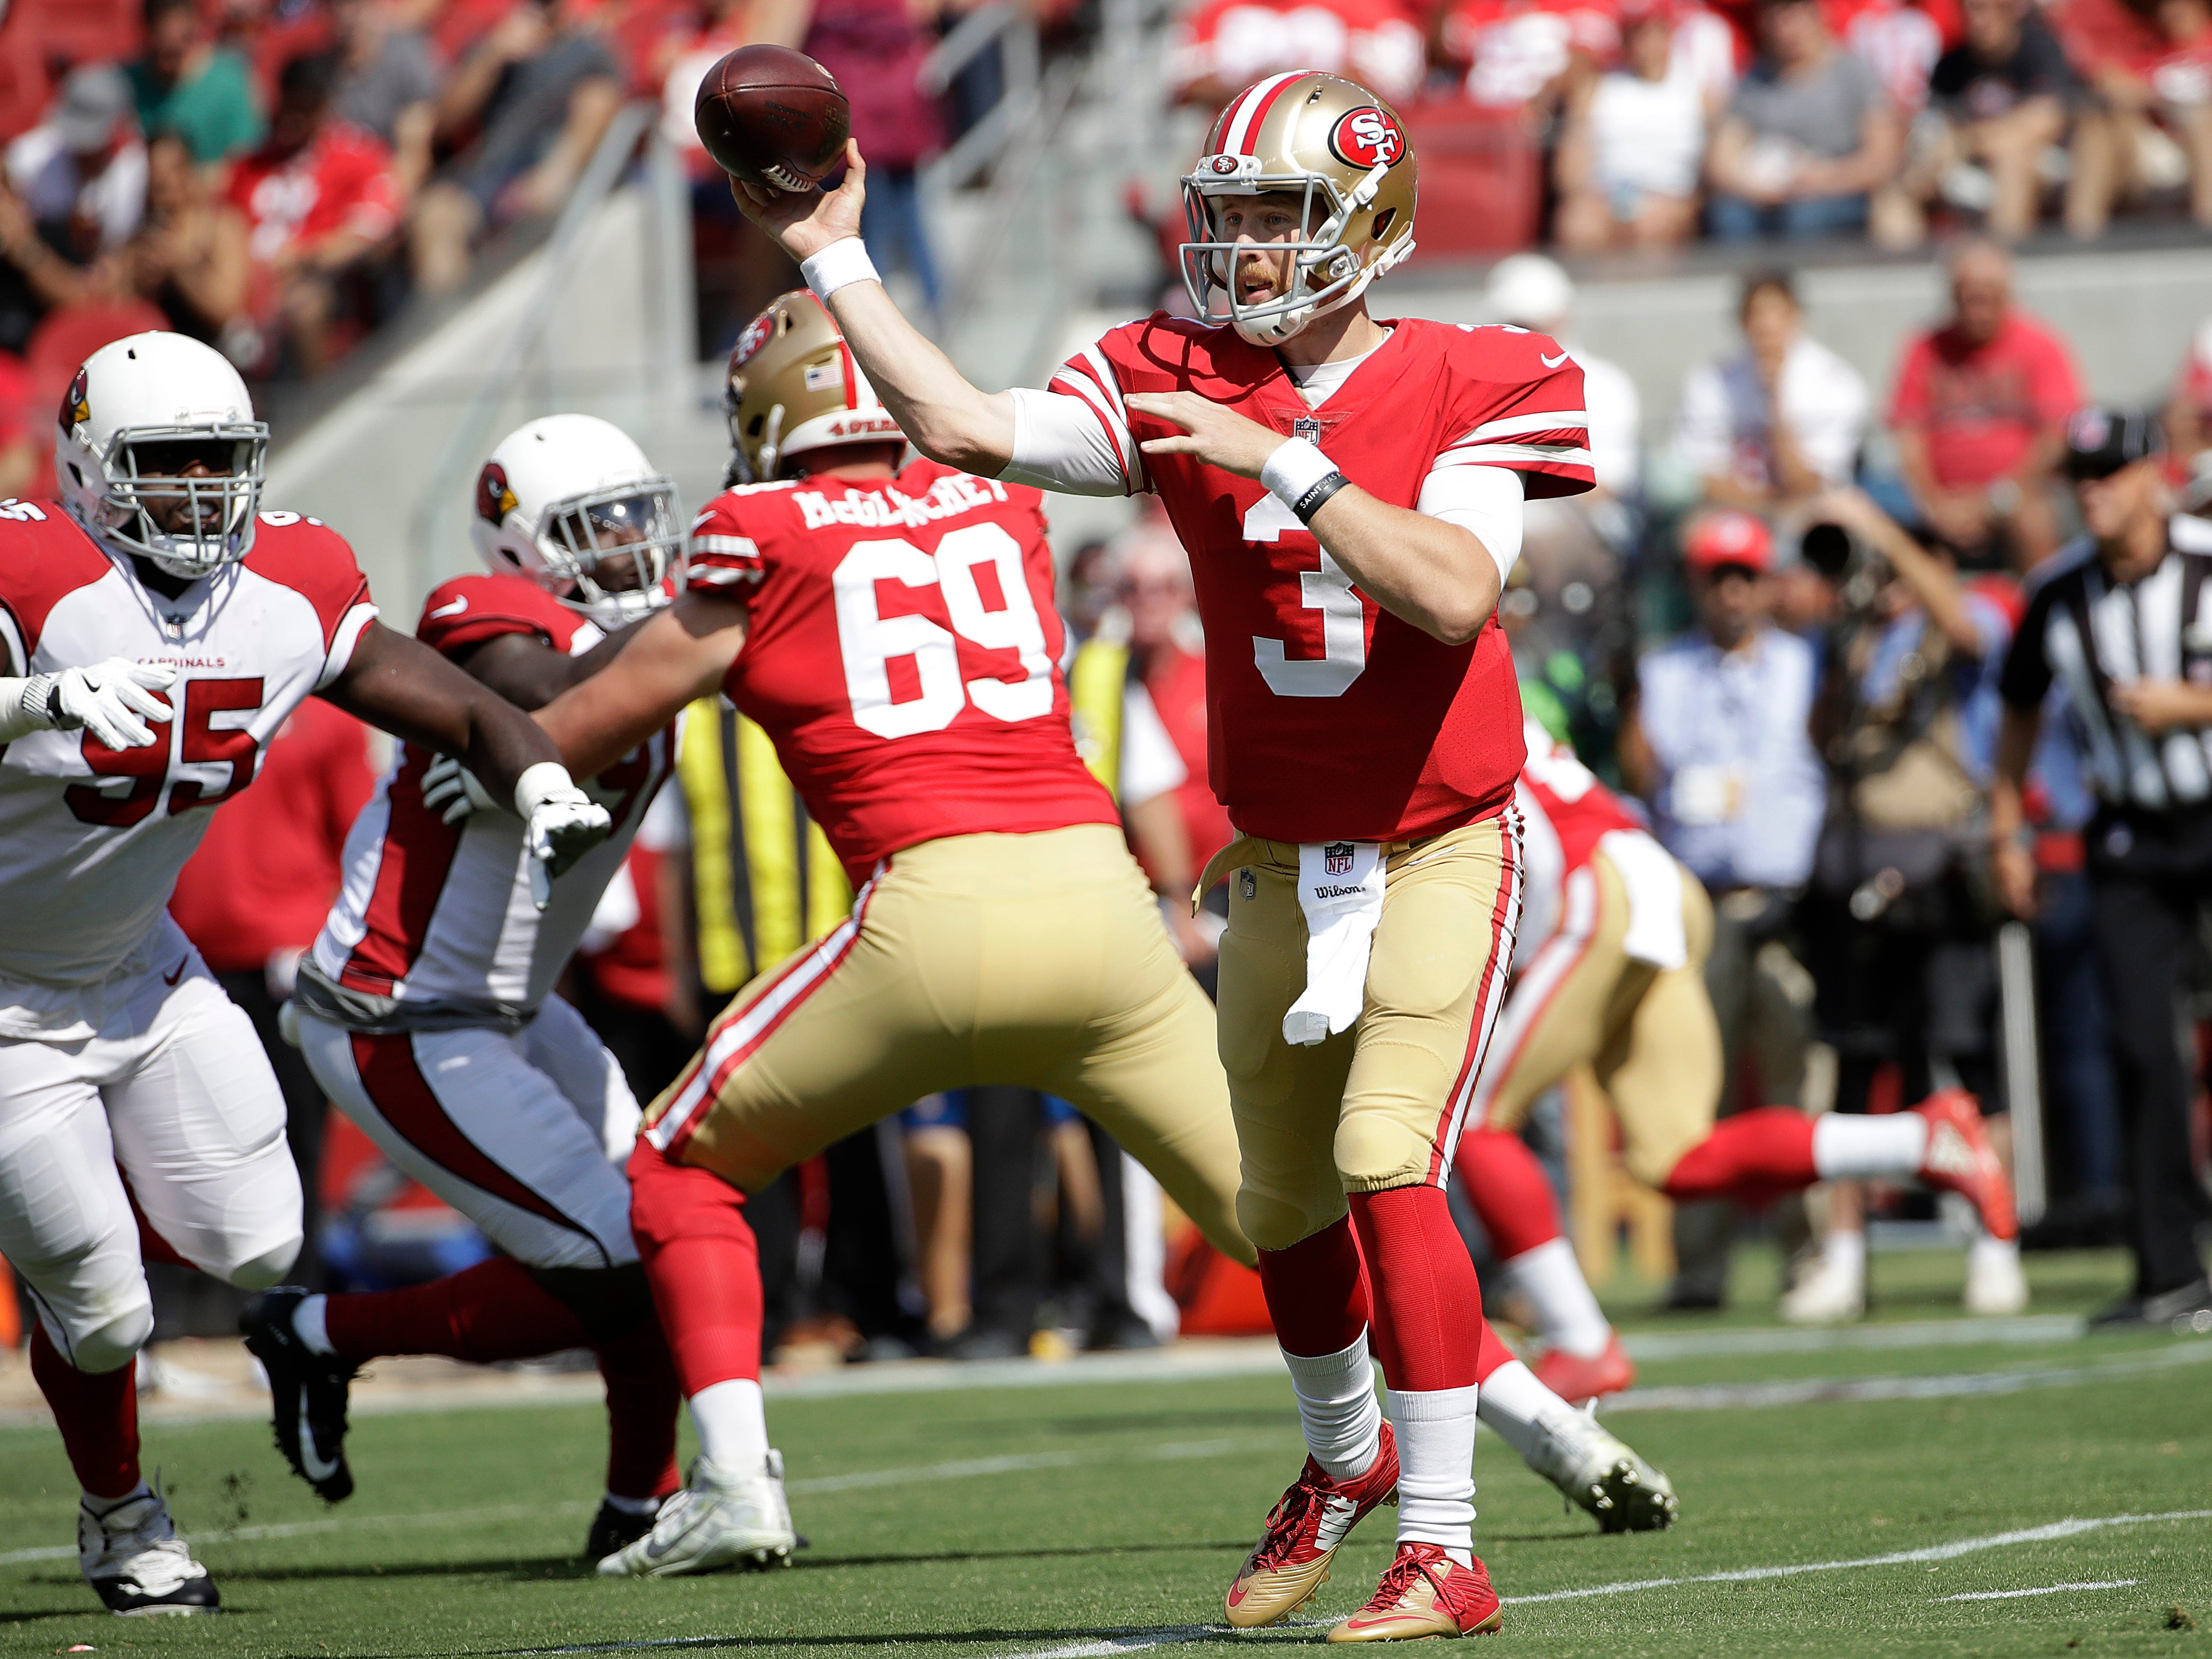 San Francisco 49ers quarterback C.J. Beathard (3) passes against the Arizona Cardinals during the first half of an NFL football game in Santa Clara, Calif., Sunday, Oct. 7, 2018.